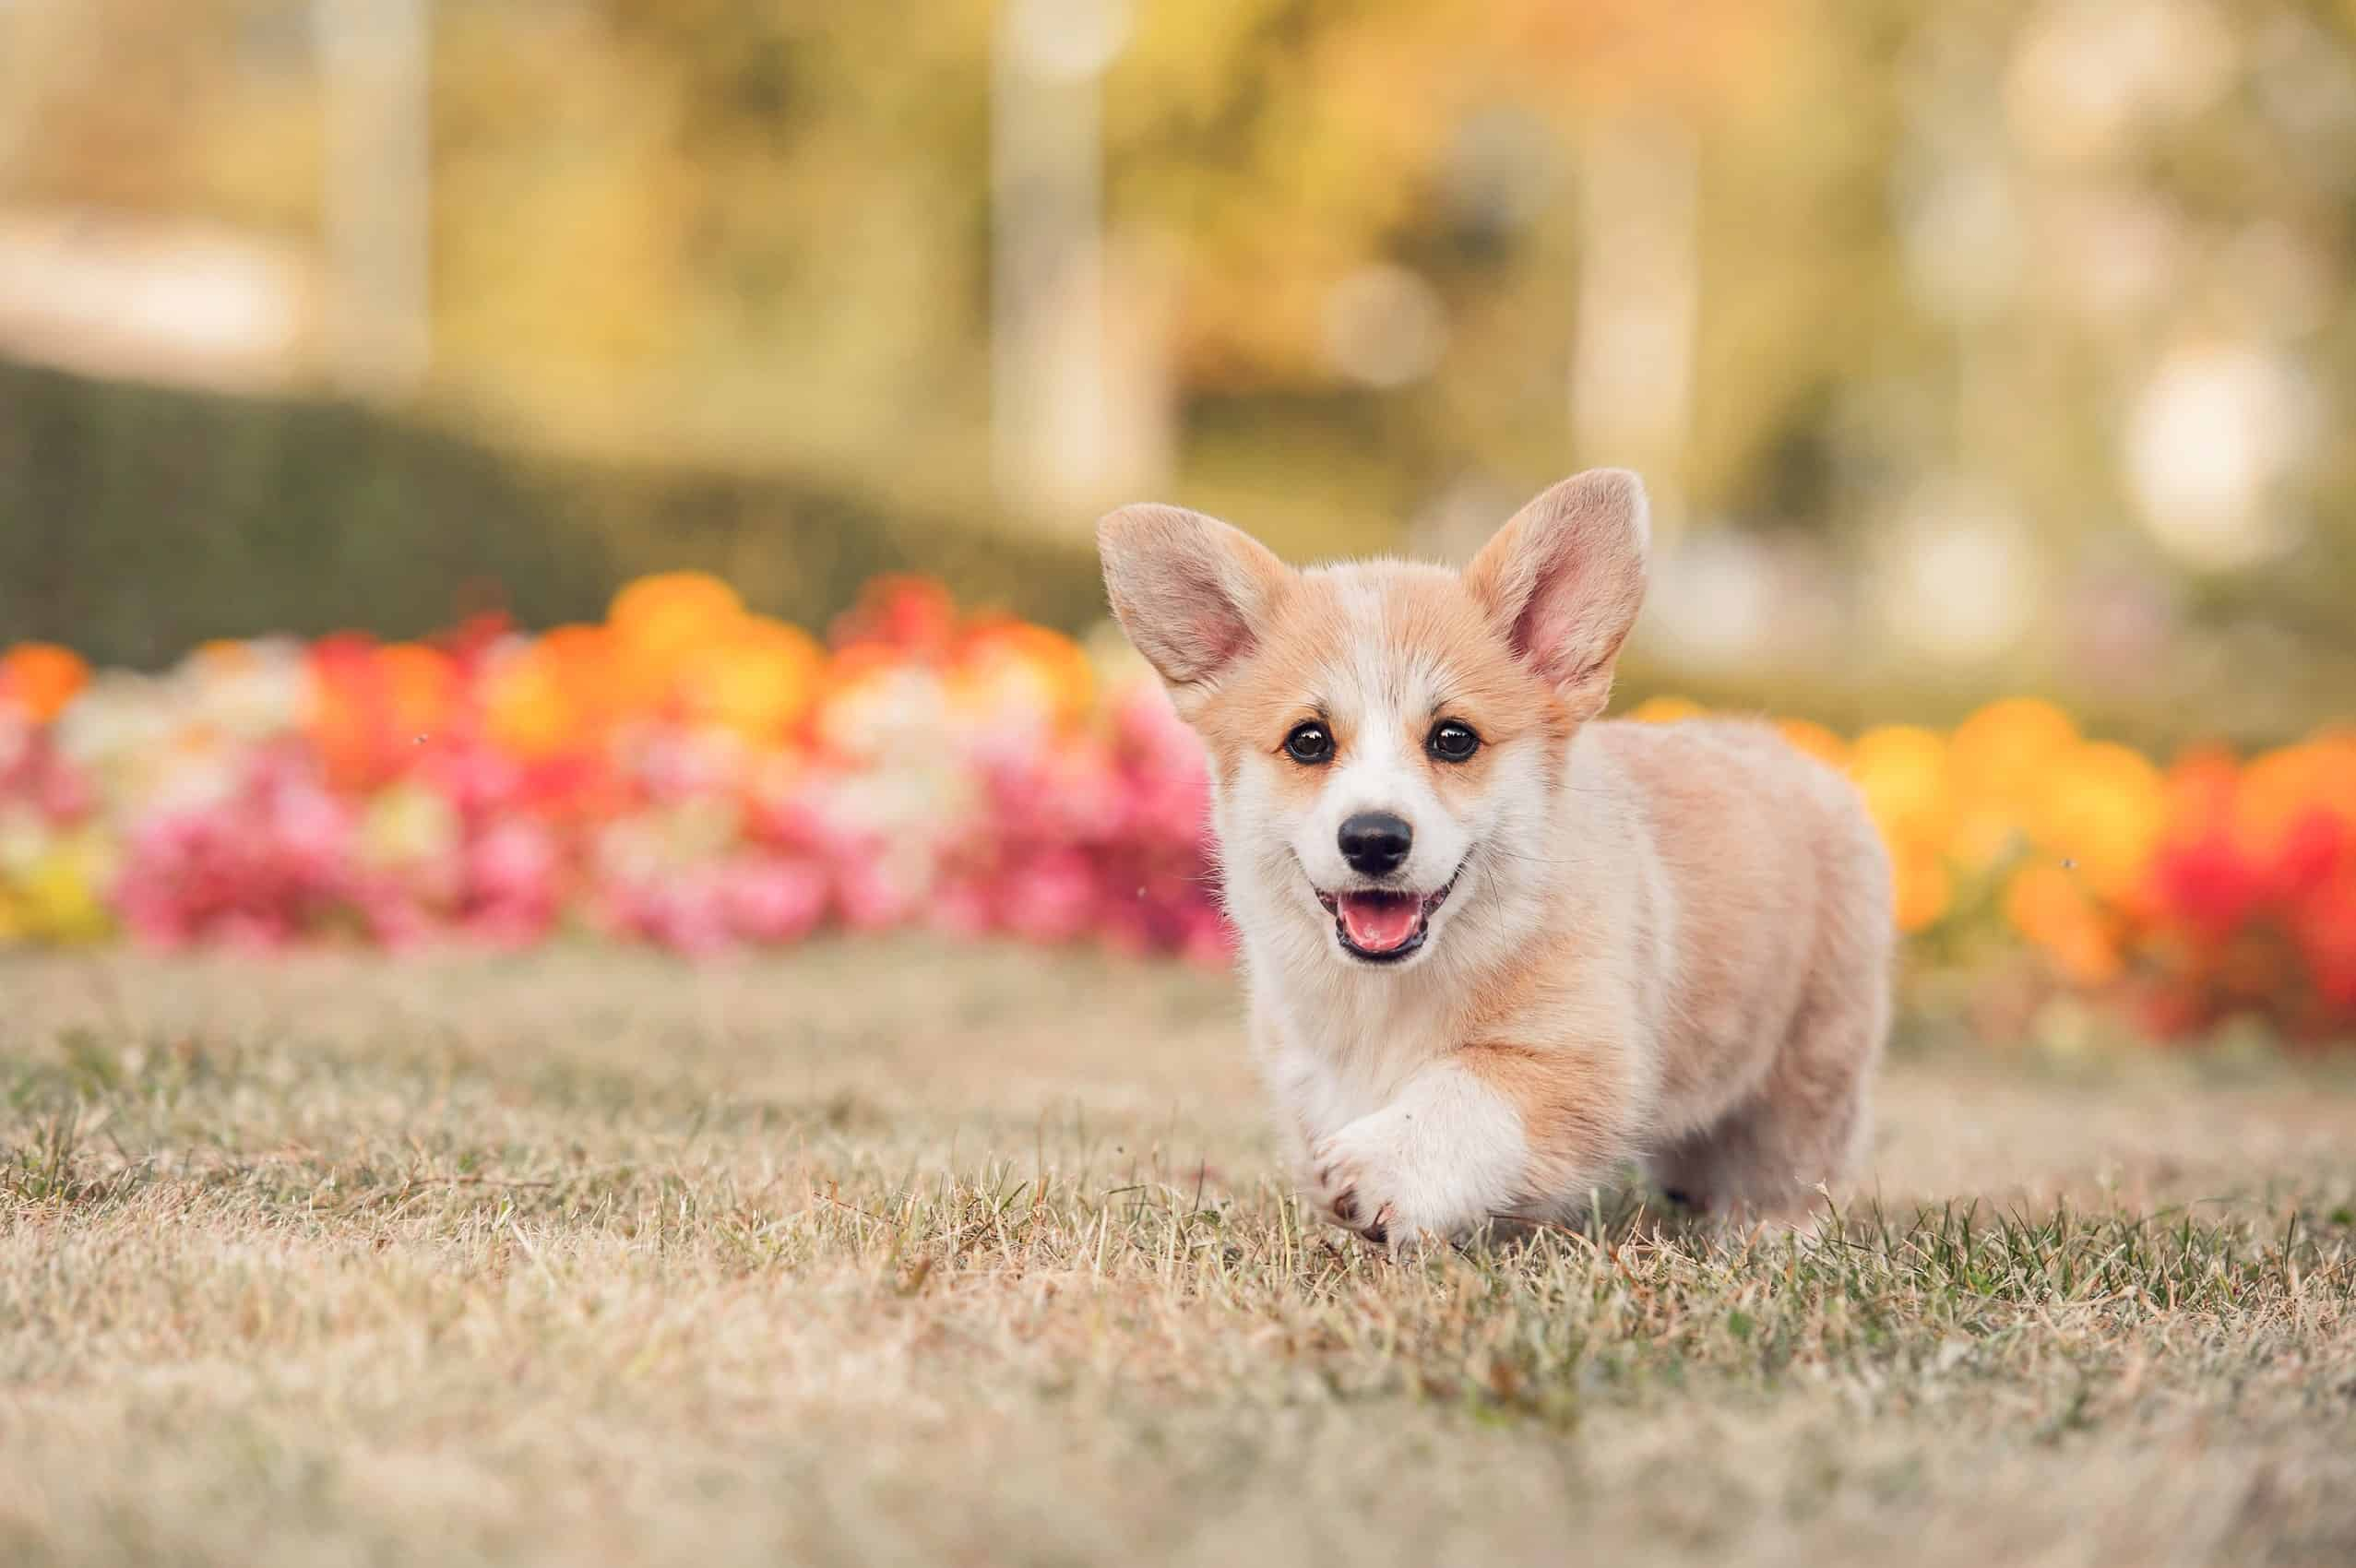 Corgi puppy plays outside. Spend extra time with your puppy. Play a game, go for a walk, anything to help your puppy burn off some extra energy. The more tiring it is for them, the better.